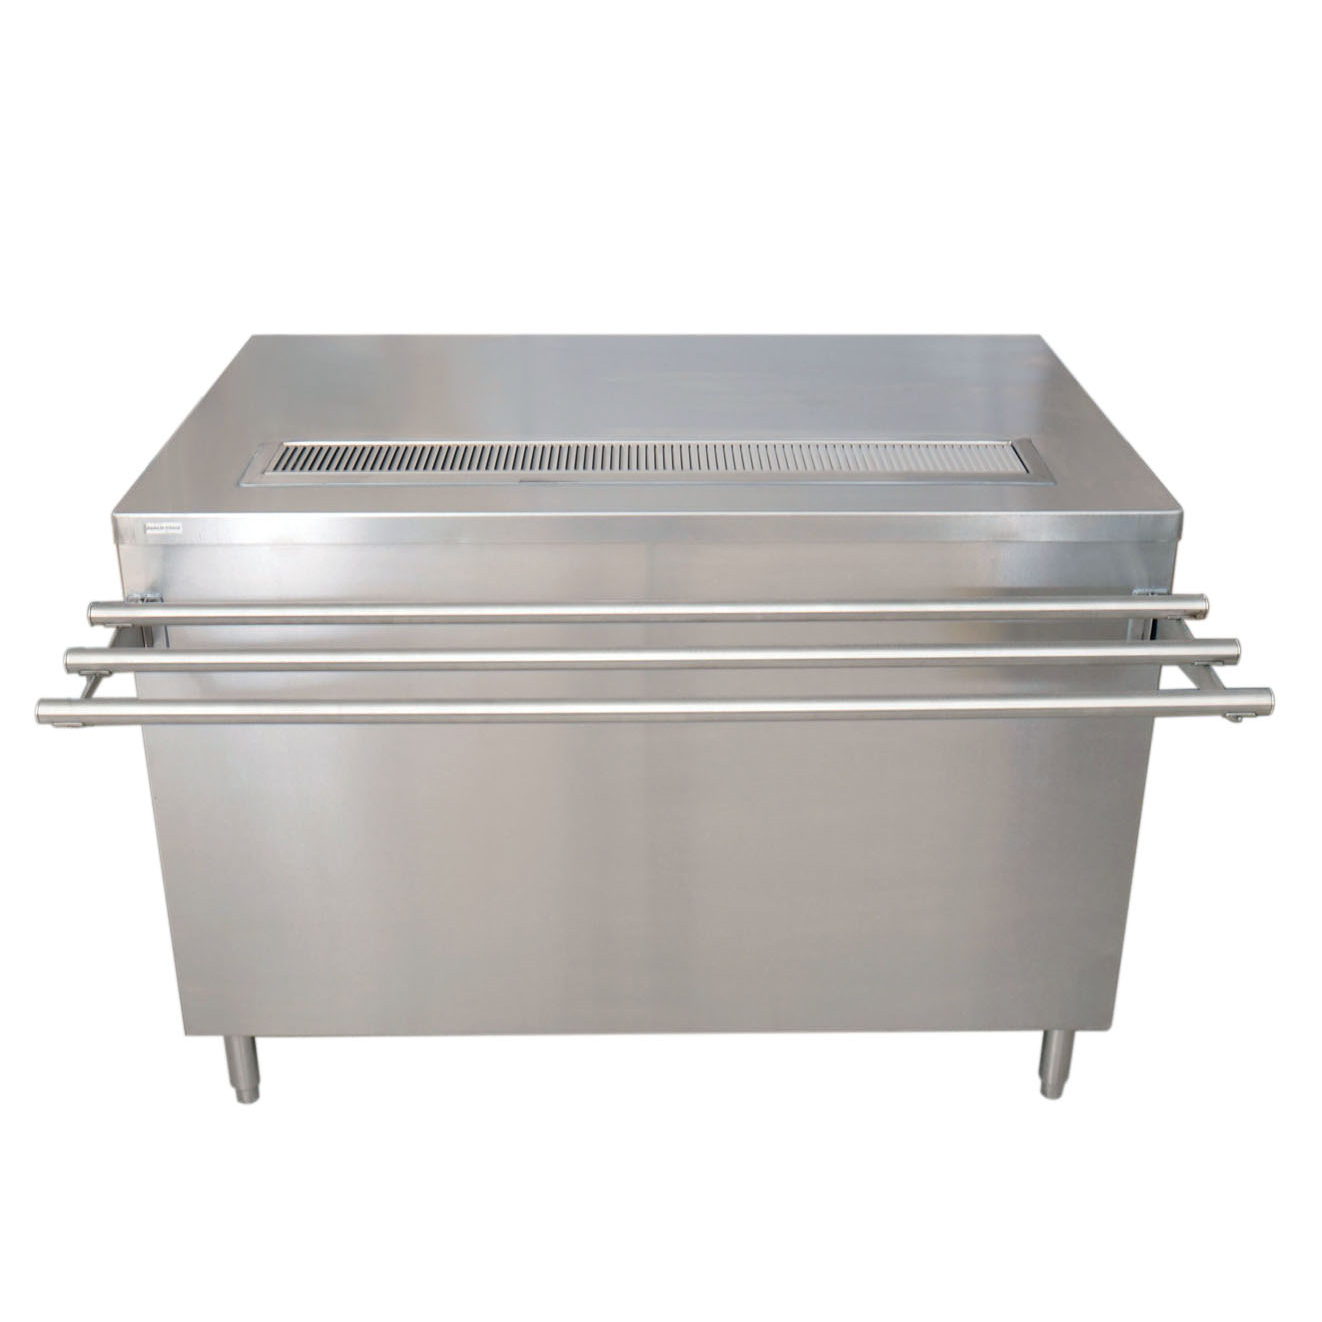 BK Resources US-3048C-HL serving counter, beverage